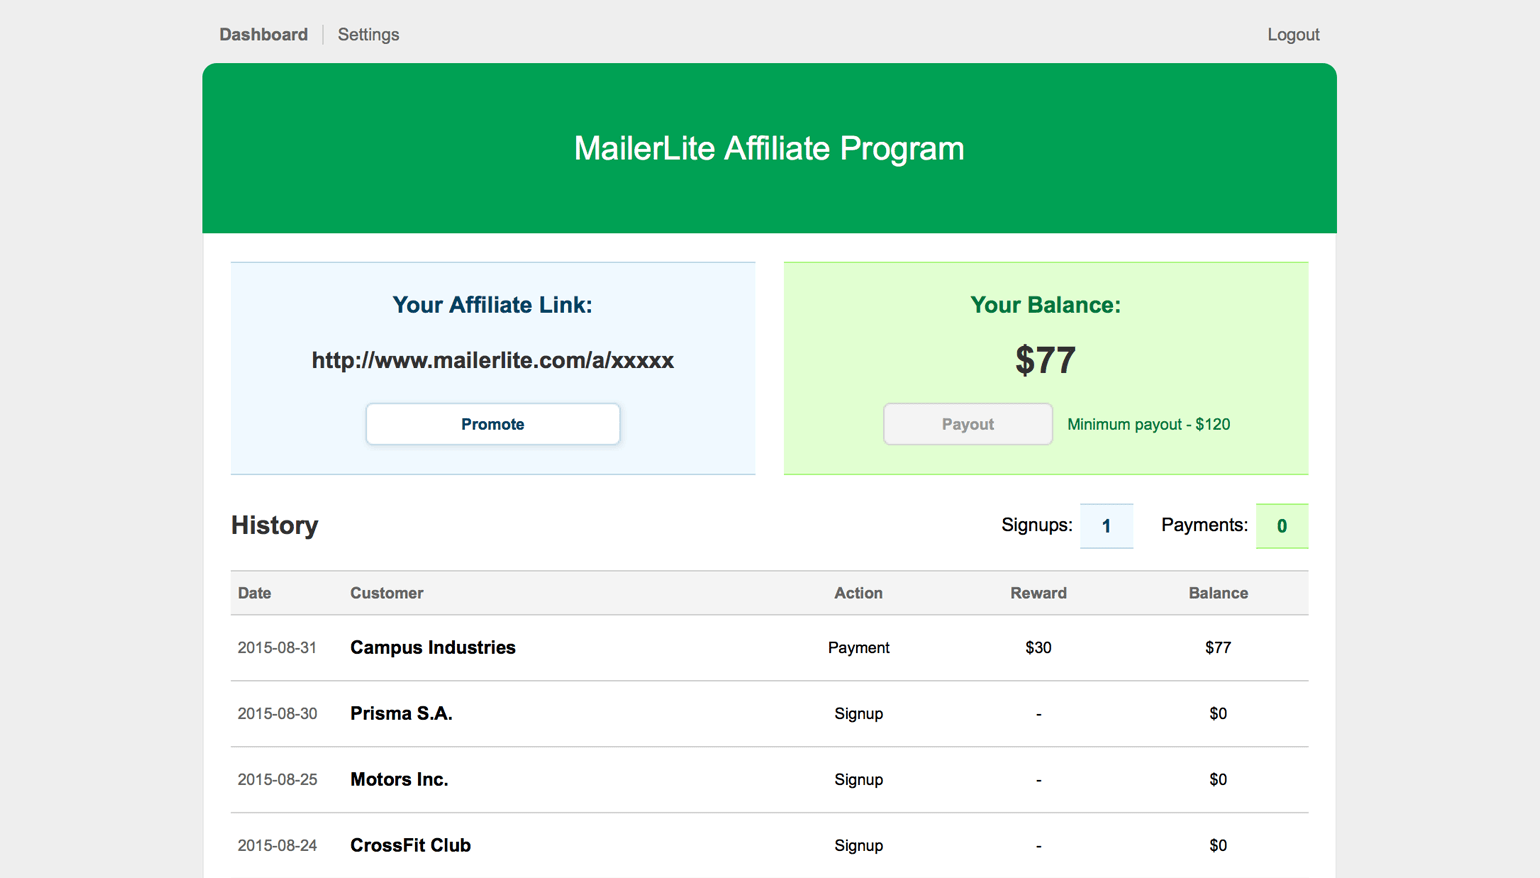 MailerLite Affiliate Dashboard